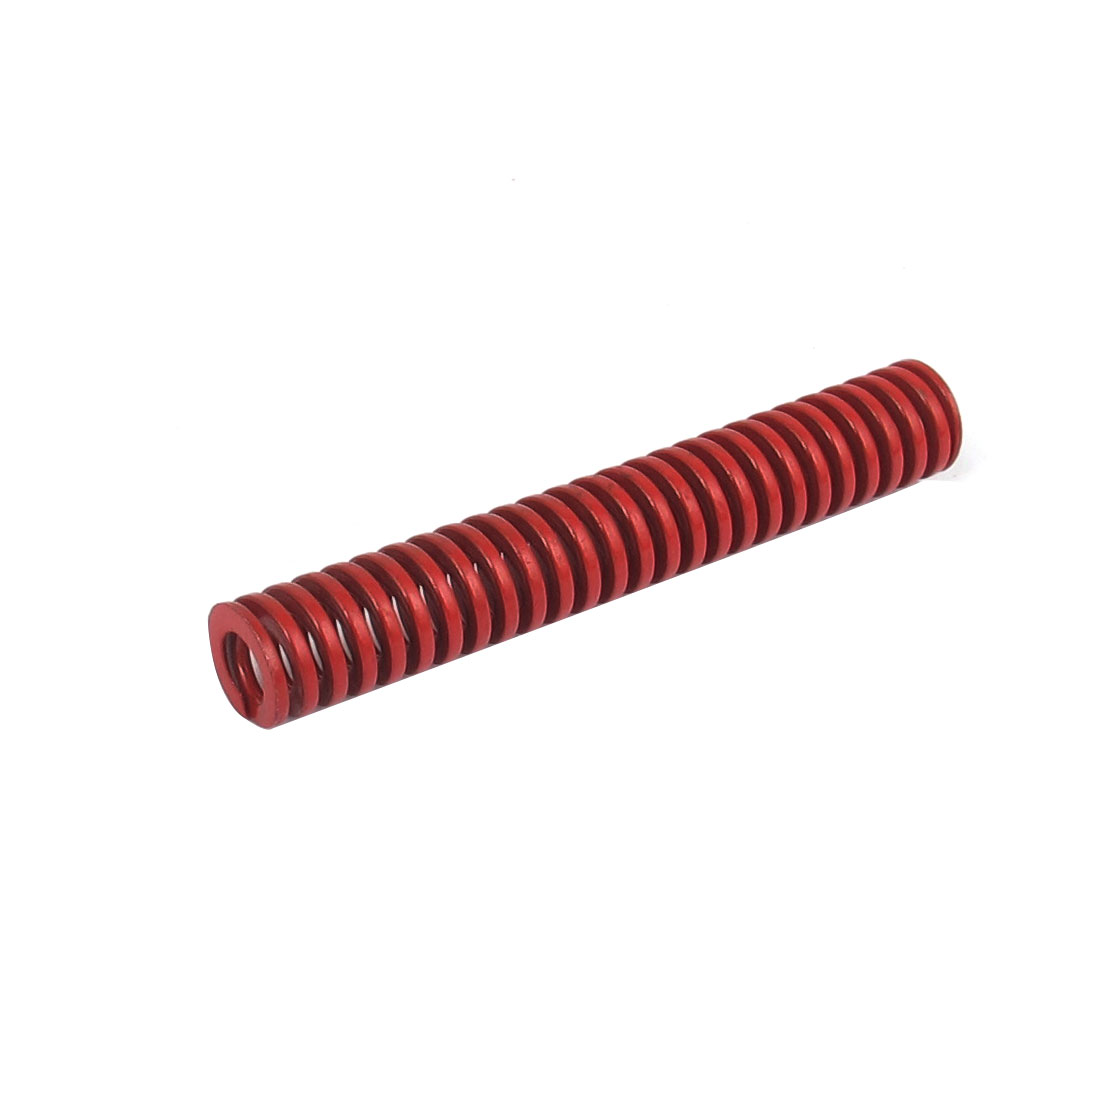 10mmx65mm Chromium Alloy Steel Medium Load Die Spring Red